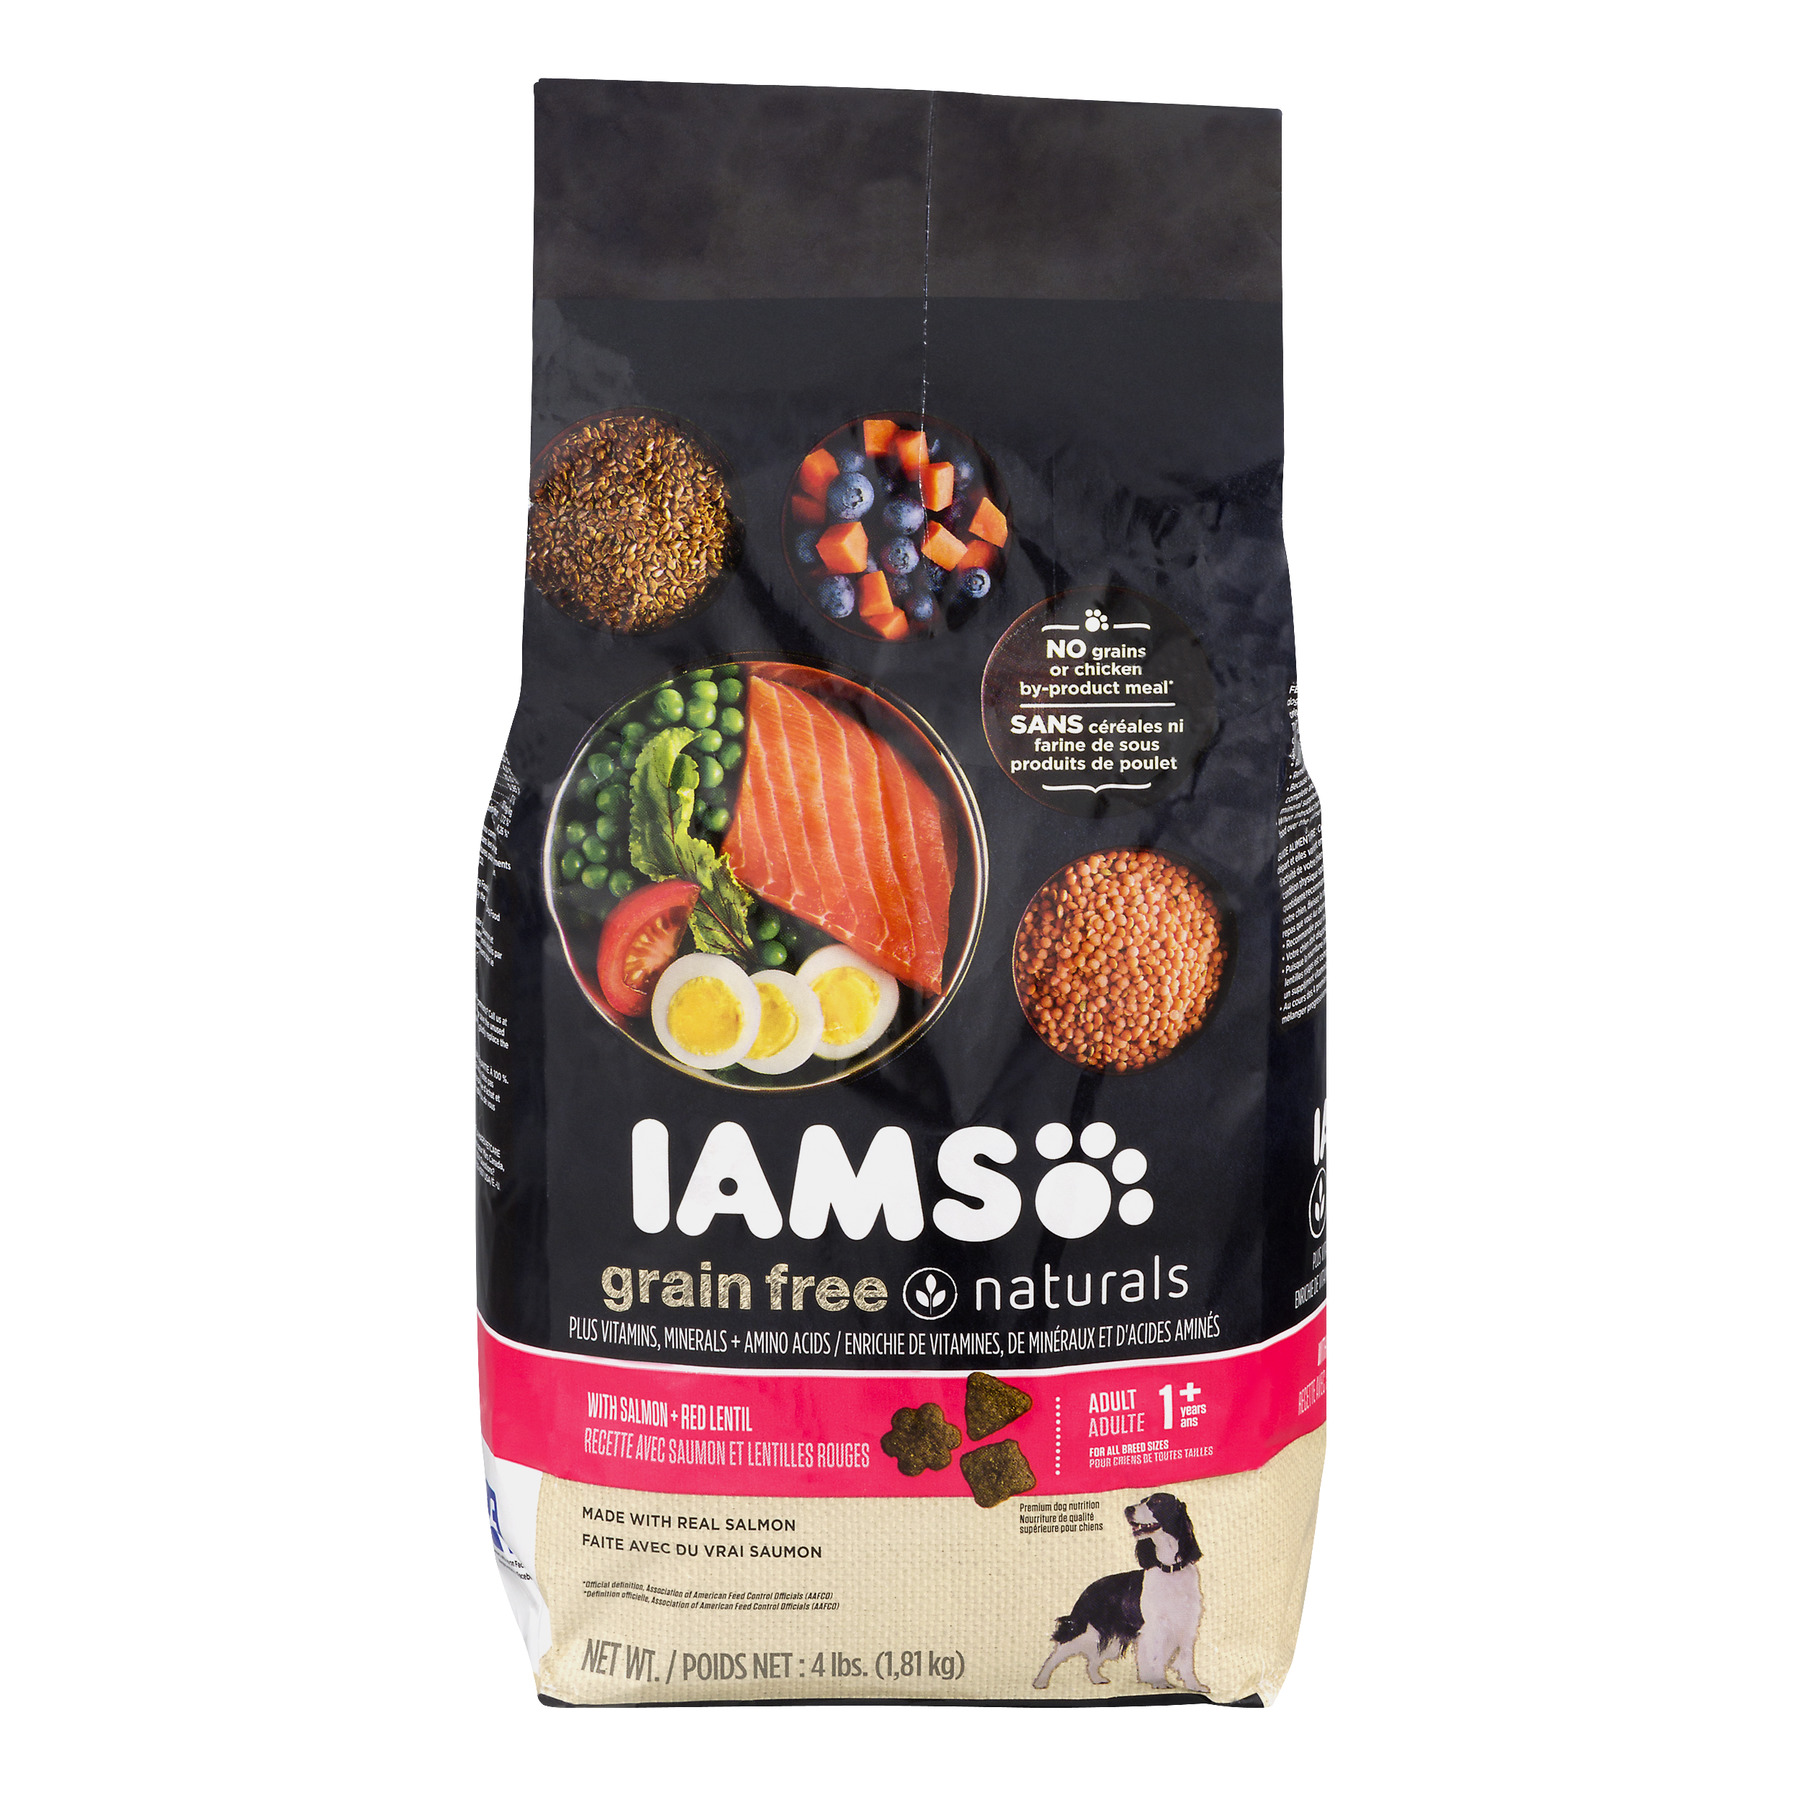 Iams Grain-Free Naturals Premium Dog Food, With Salmon + Red Lentil 1 + Years, 4.0 Lb